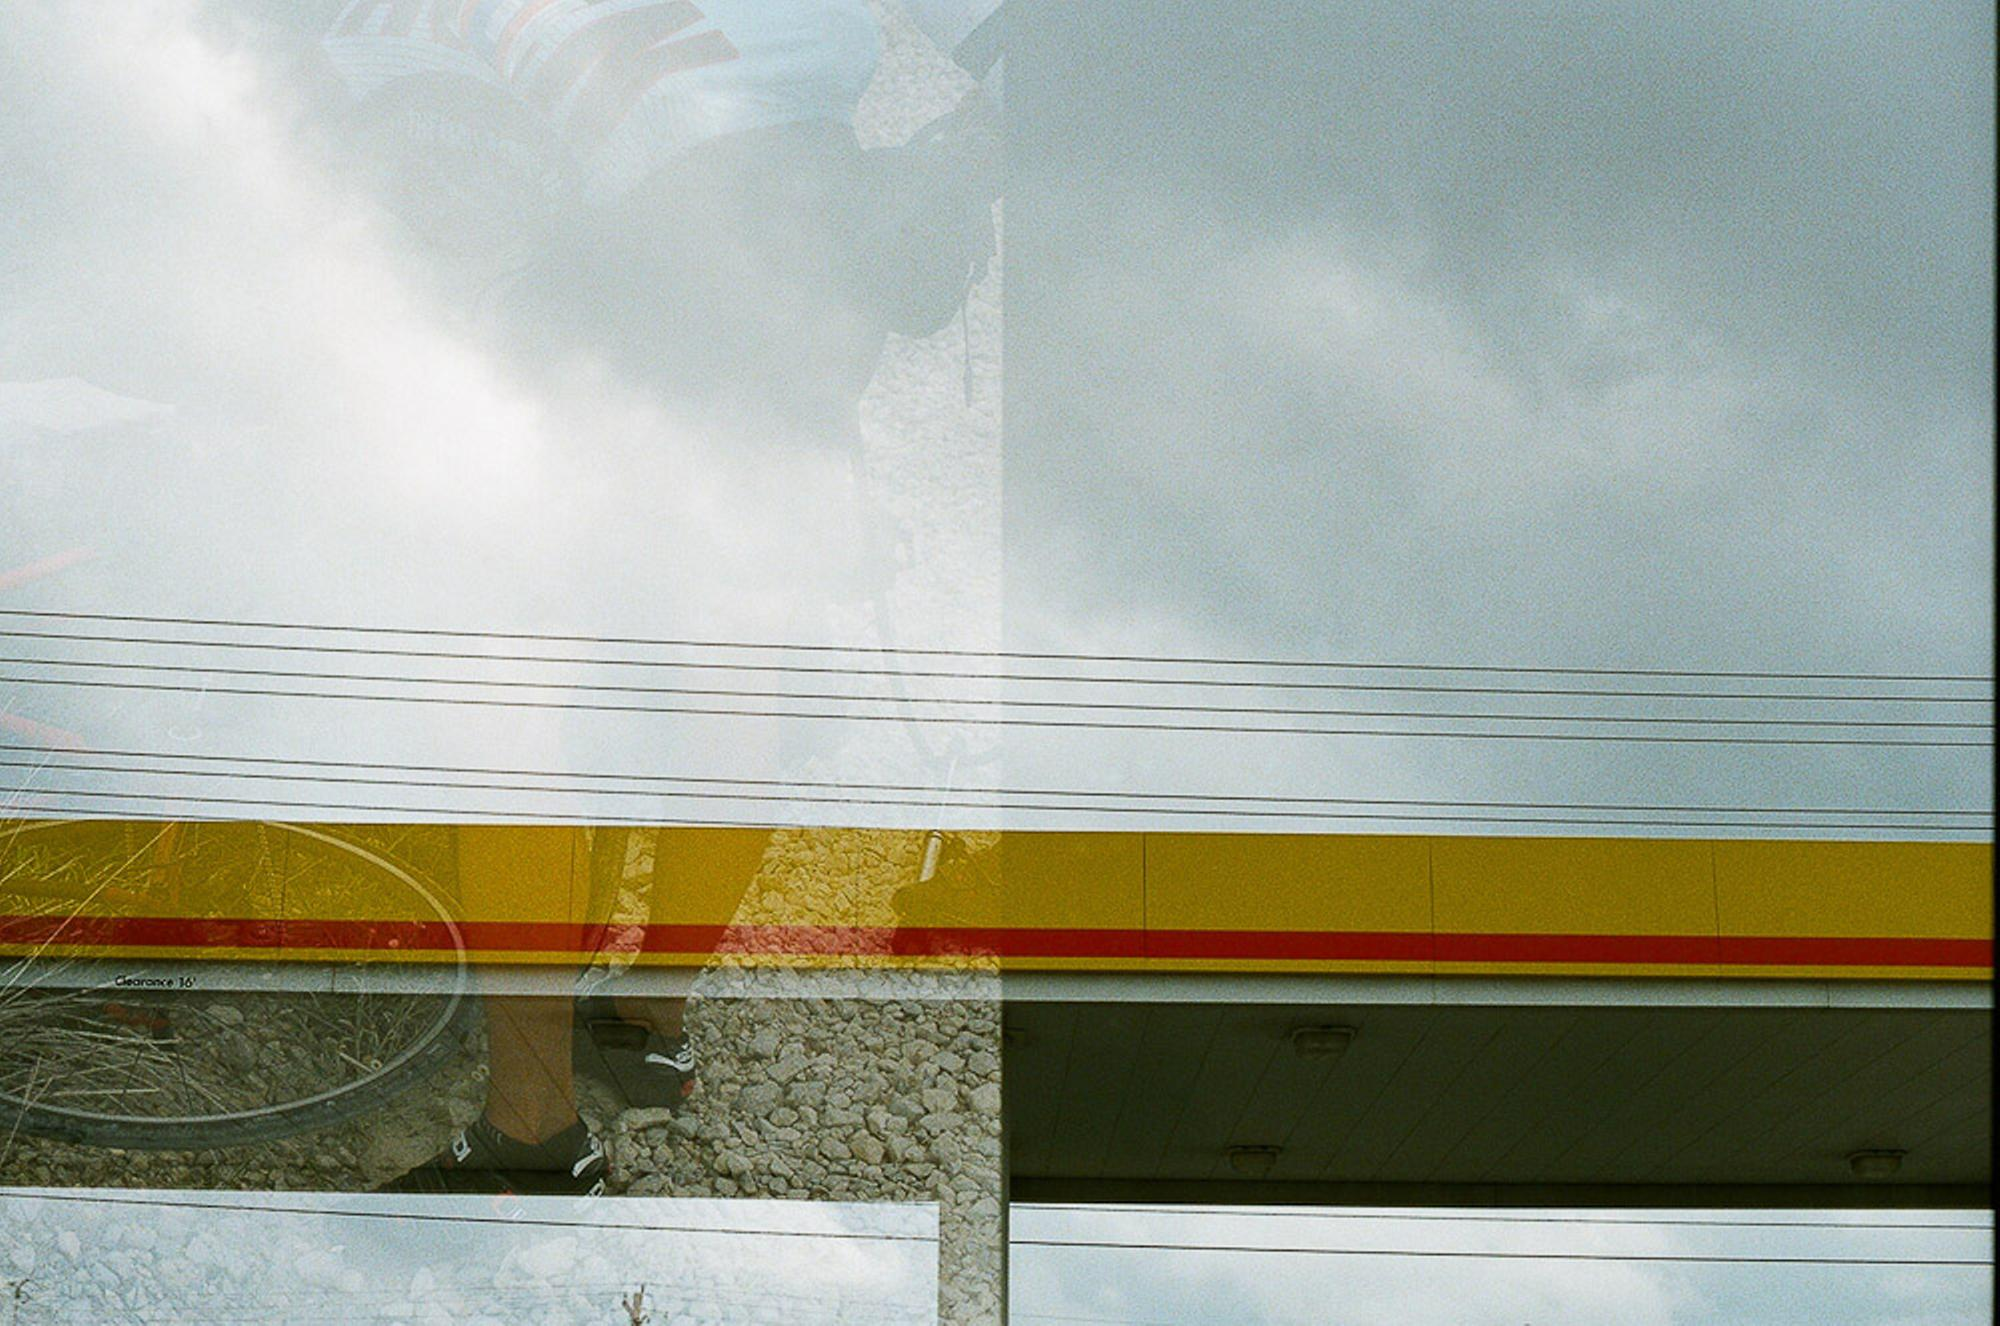 Shell station double exposure